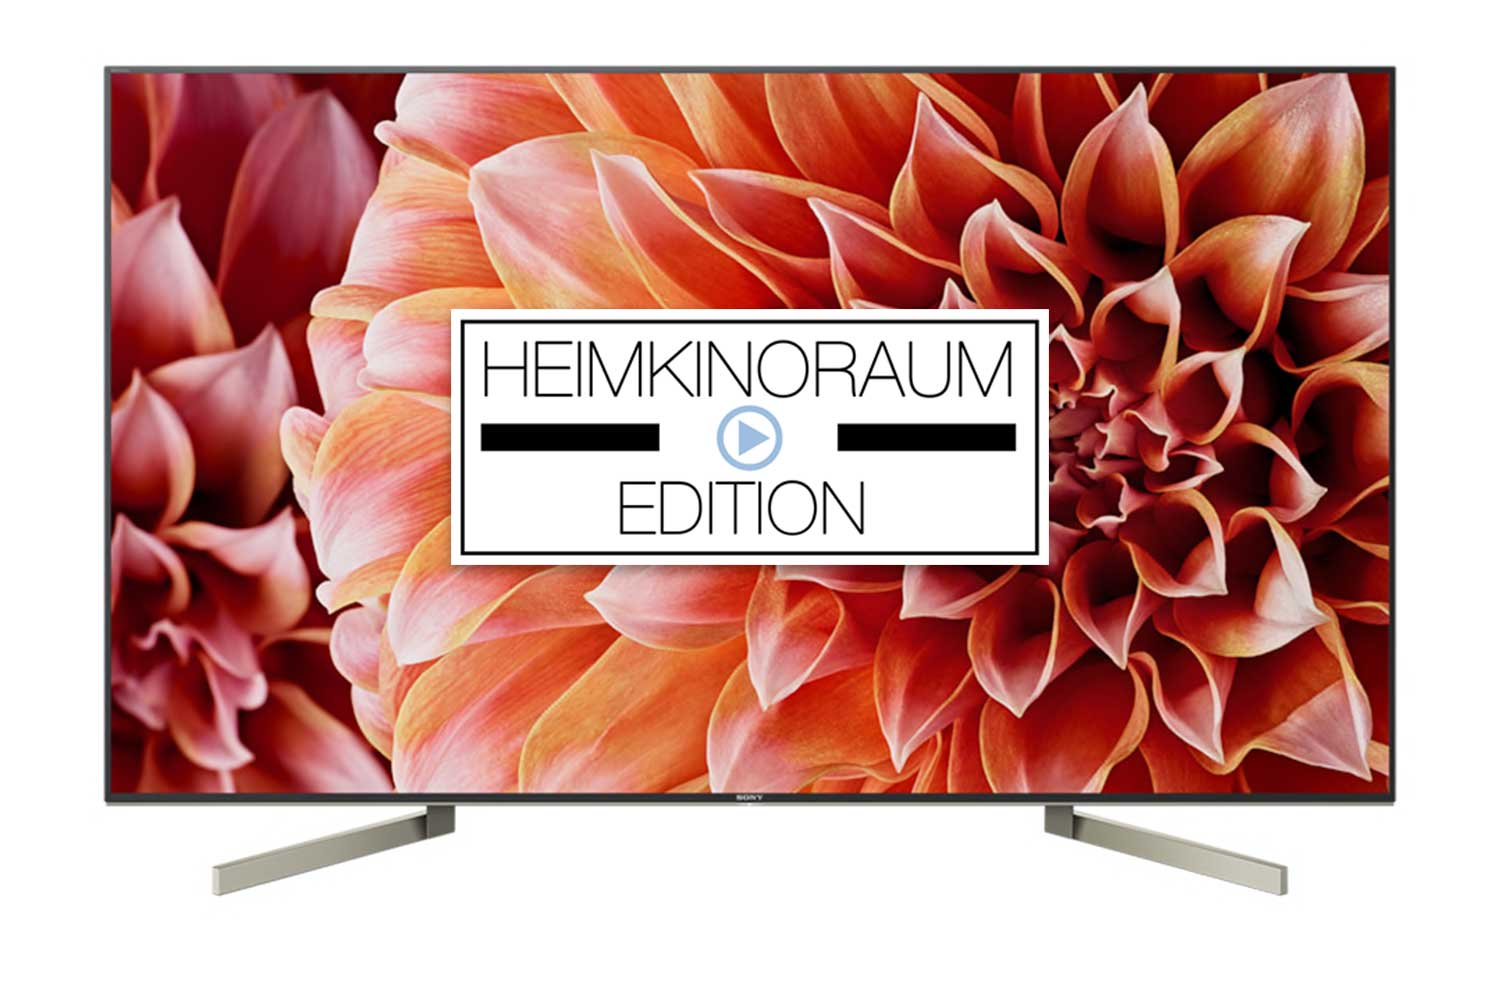 Sony XF9005 4K HDR Fernseher mit Android TV